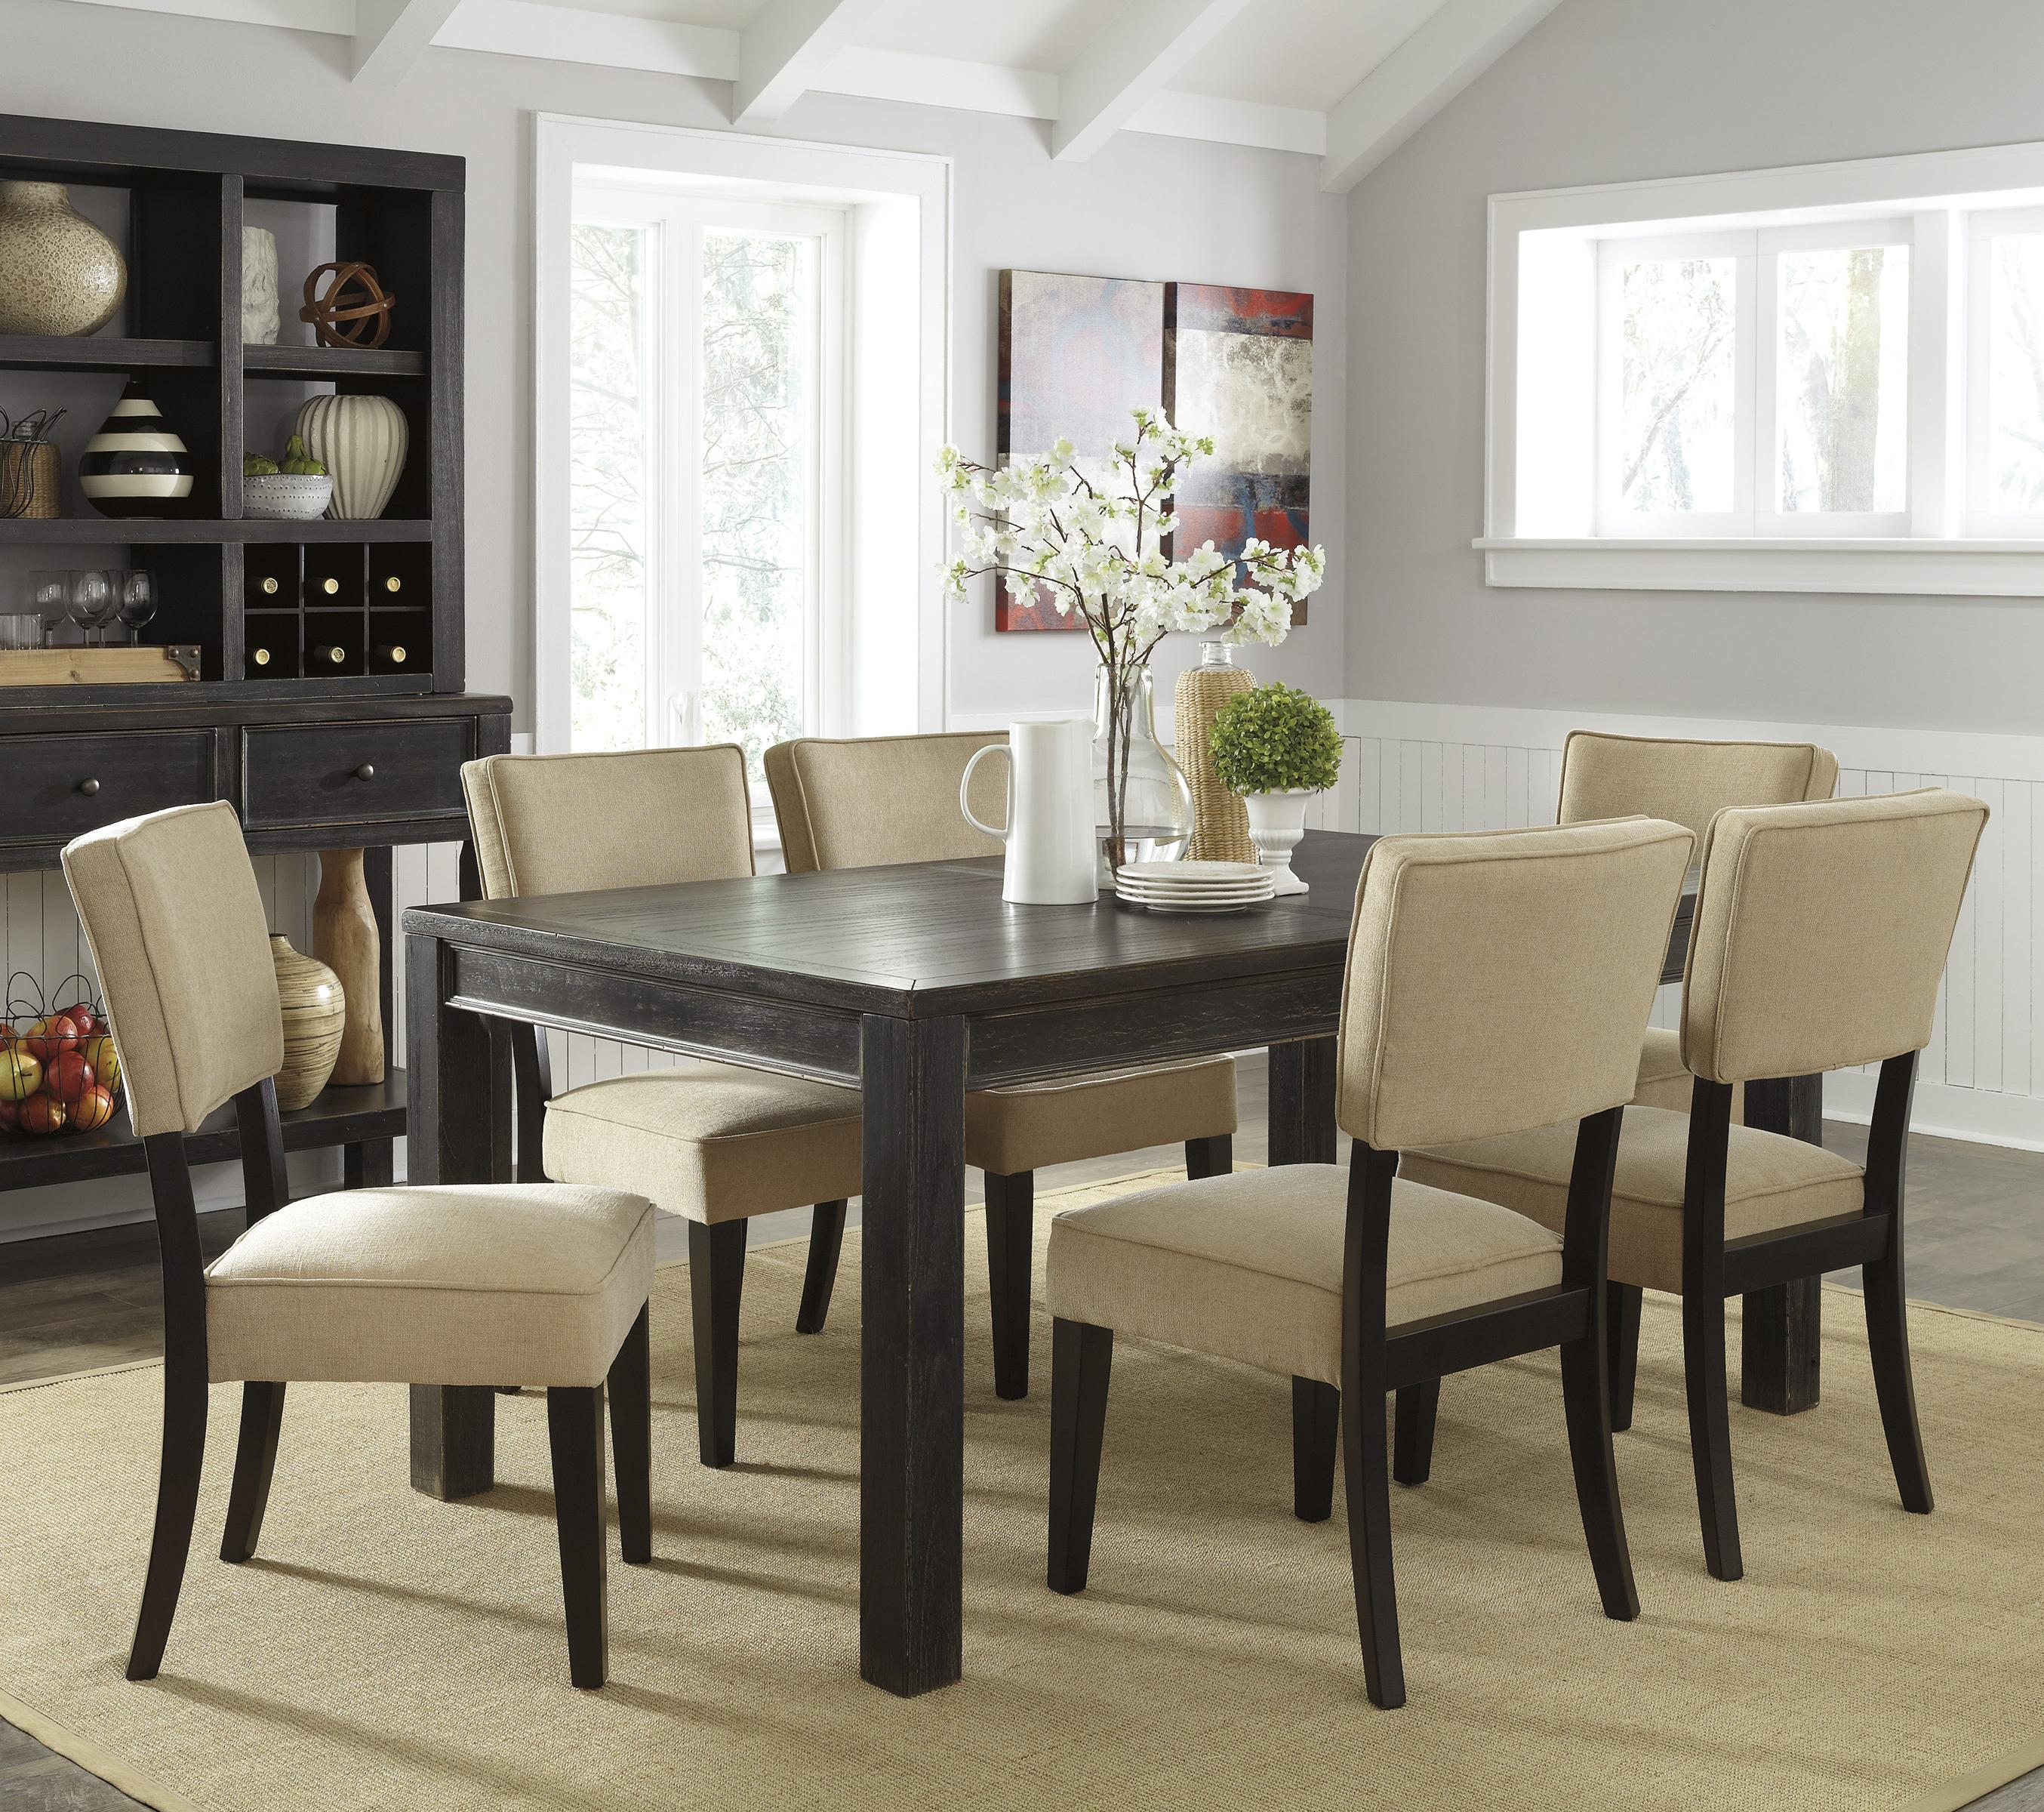 Signature Design by Ashley Gavelston 7-Piece Rectangular Table Dining Set - Item Number: D532-25+6x01